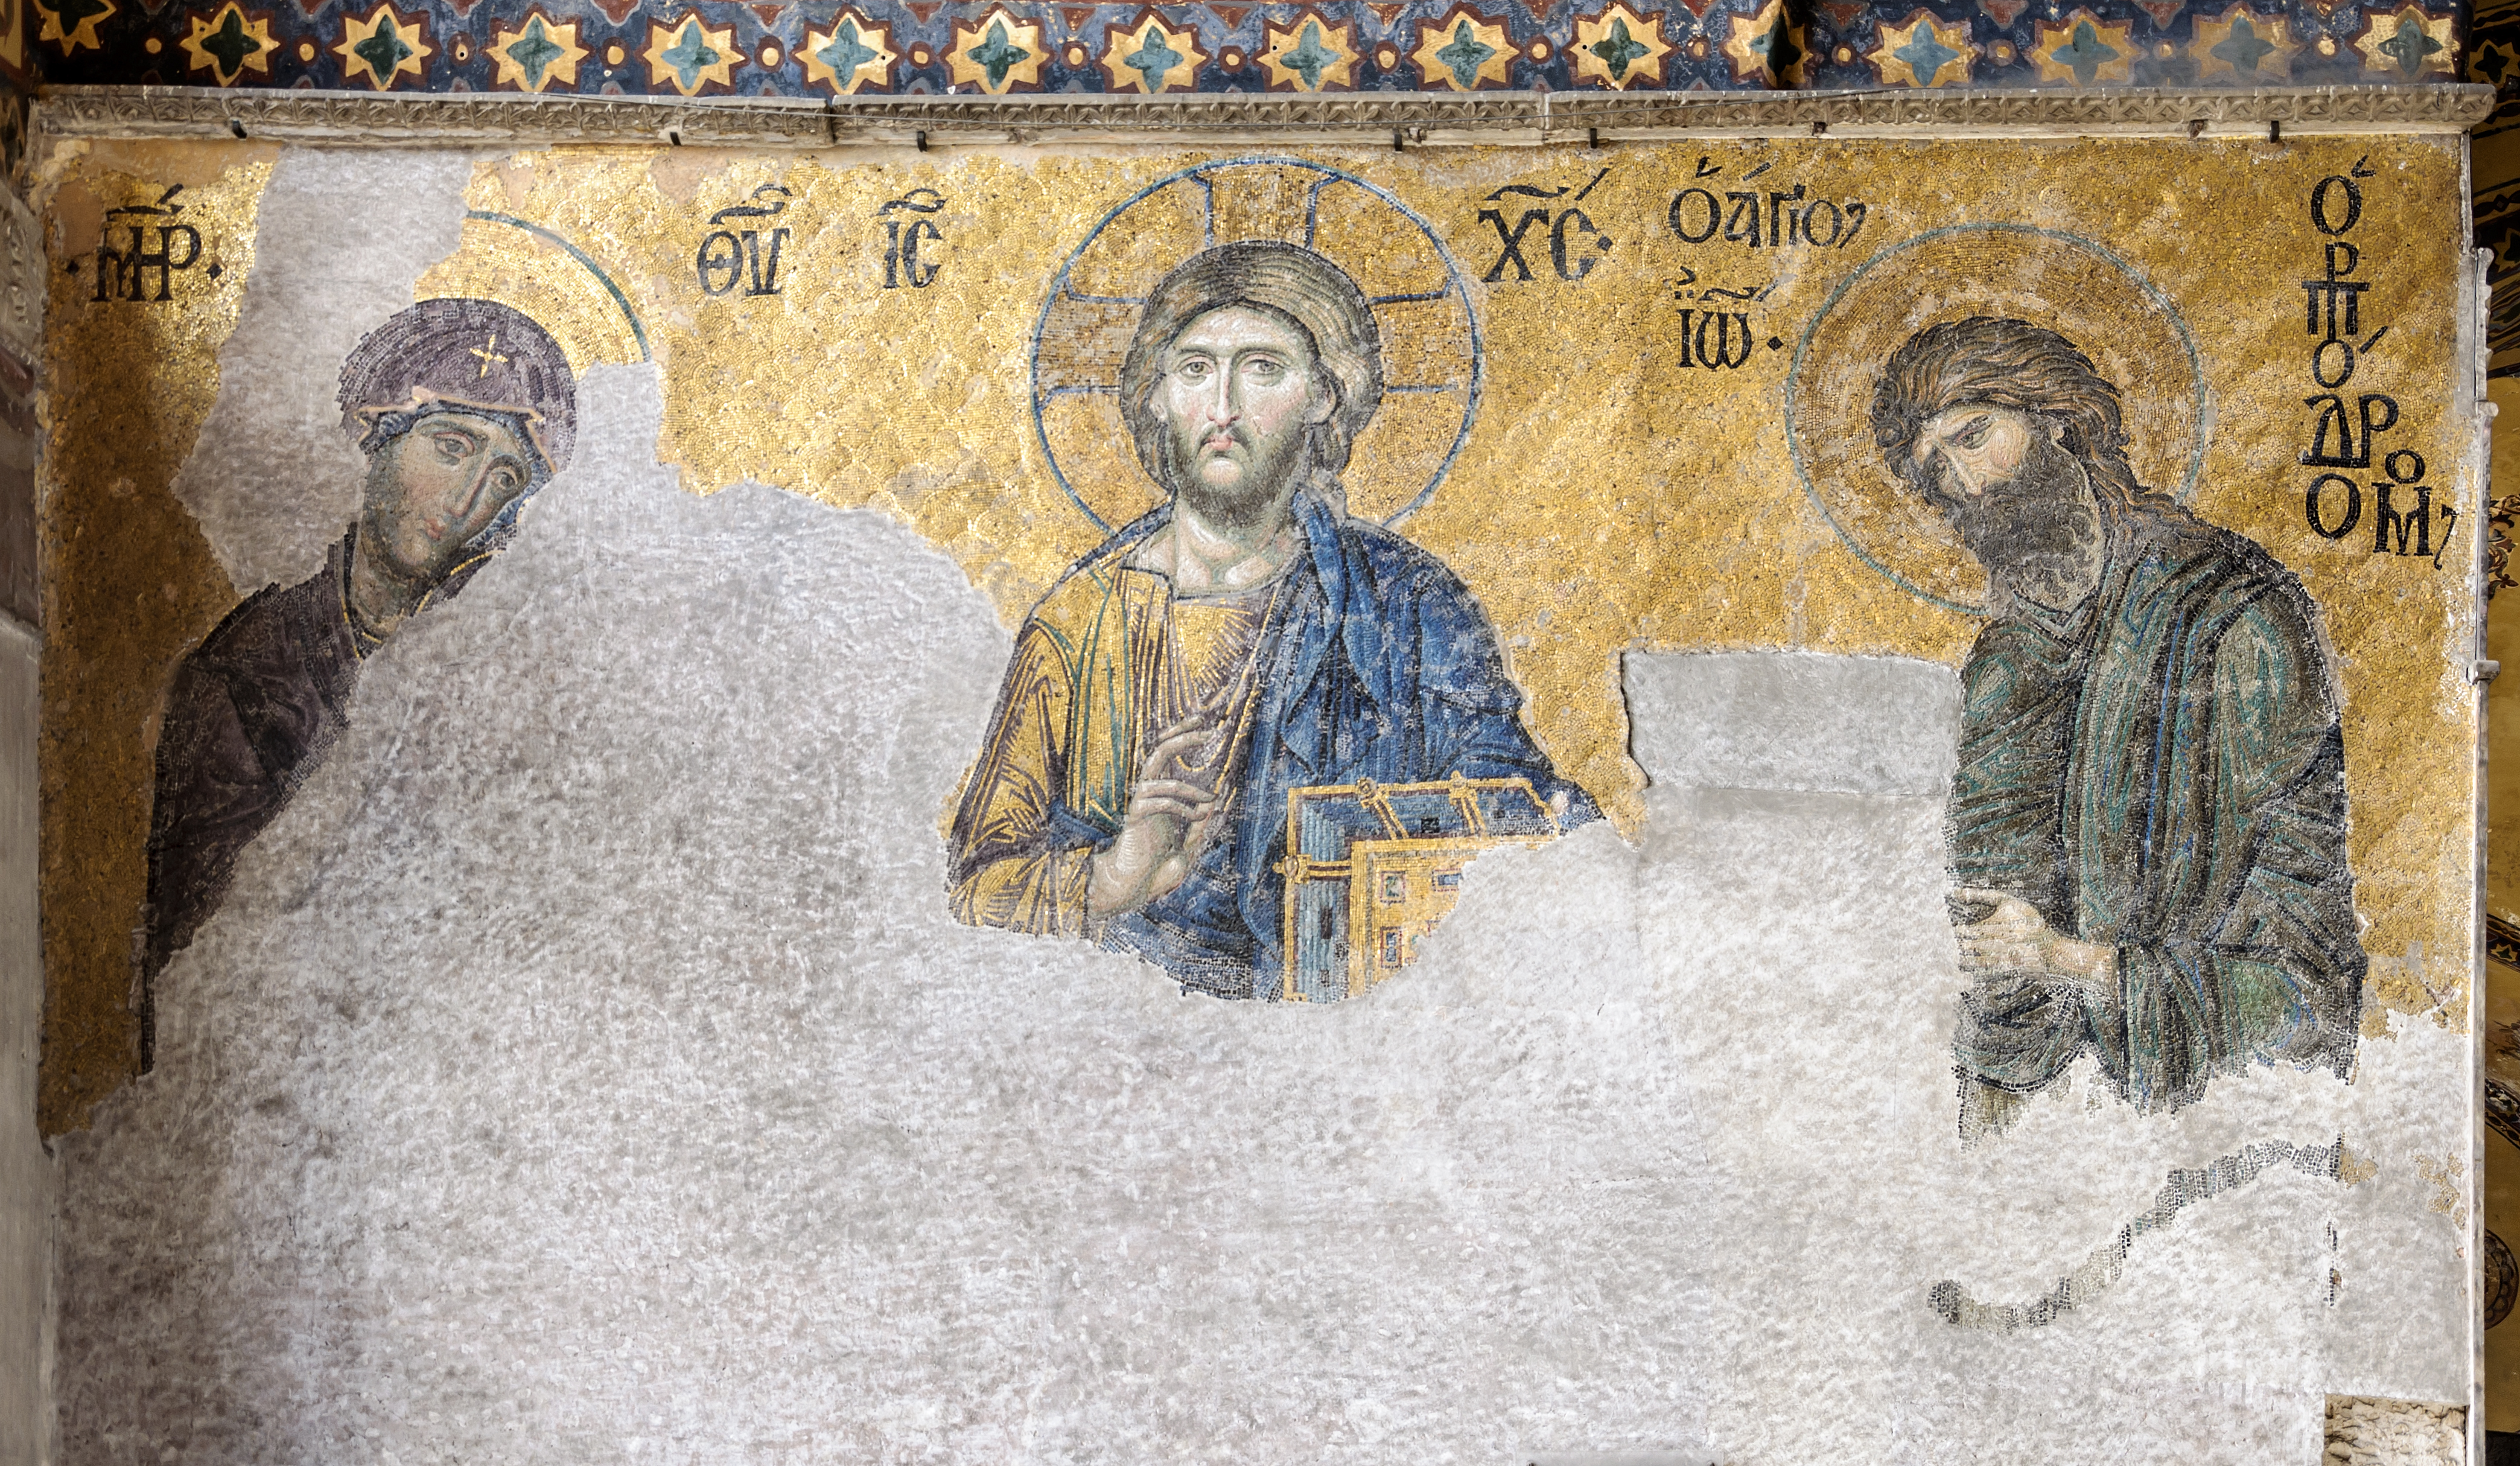 Image result for public domain image of the deesis mosaic in istanbul ayasofya